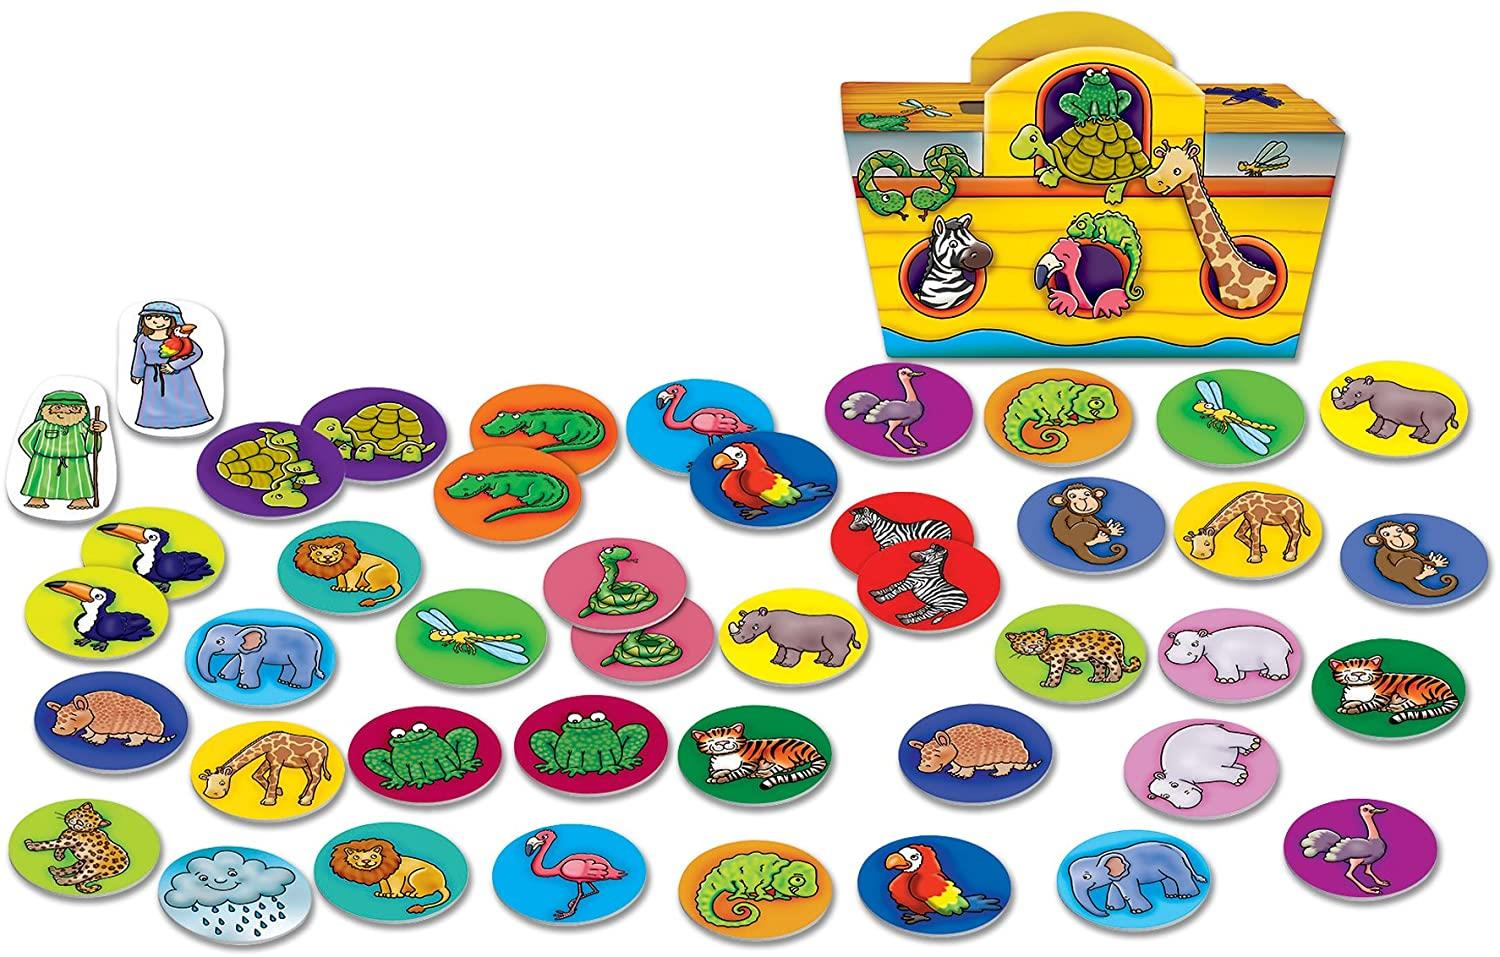 thumbnail 310 - Orchard Toys Educational Games For Kids Choose Game From Drop Down Menu